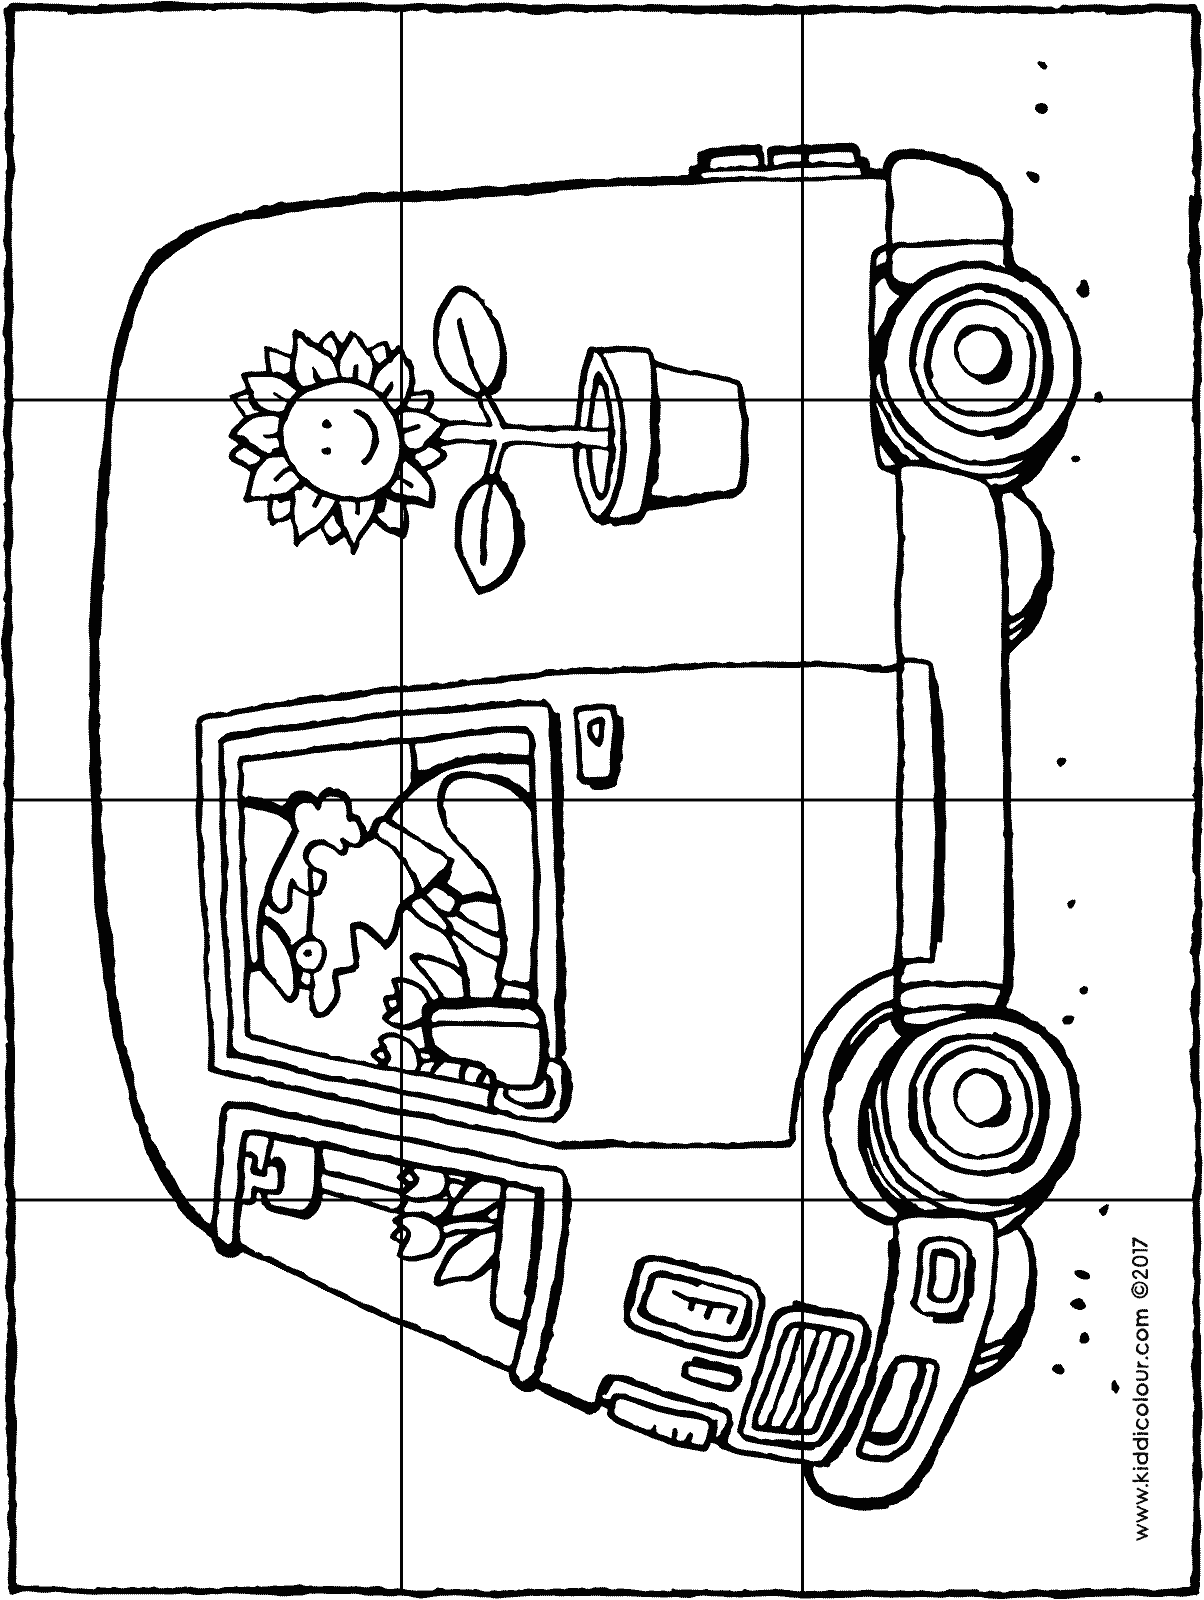 delivery van puzzle colouring page drawing picture p12H